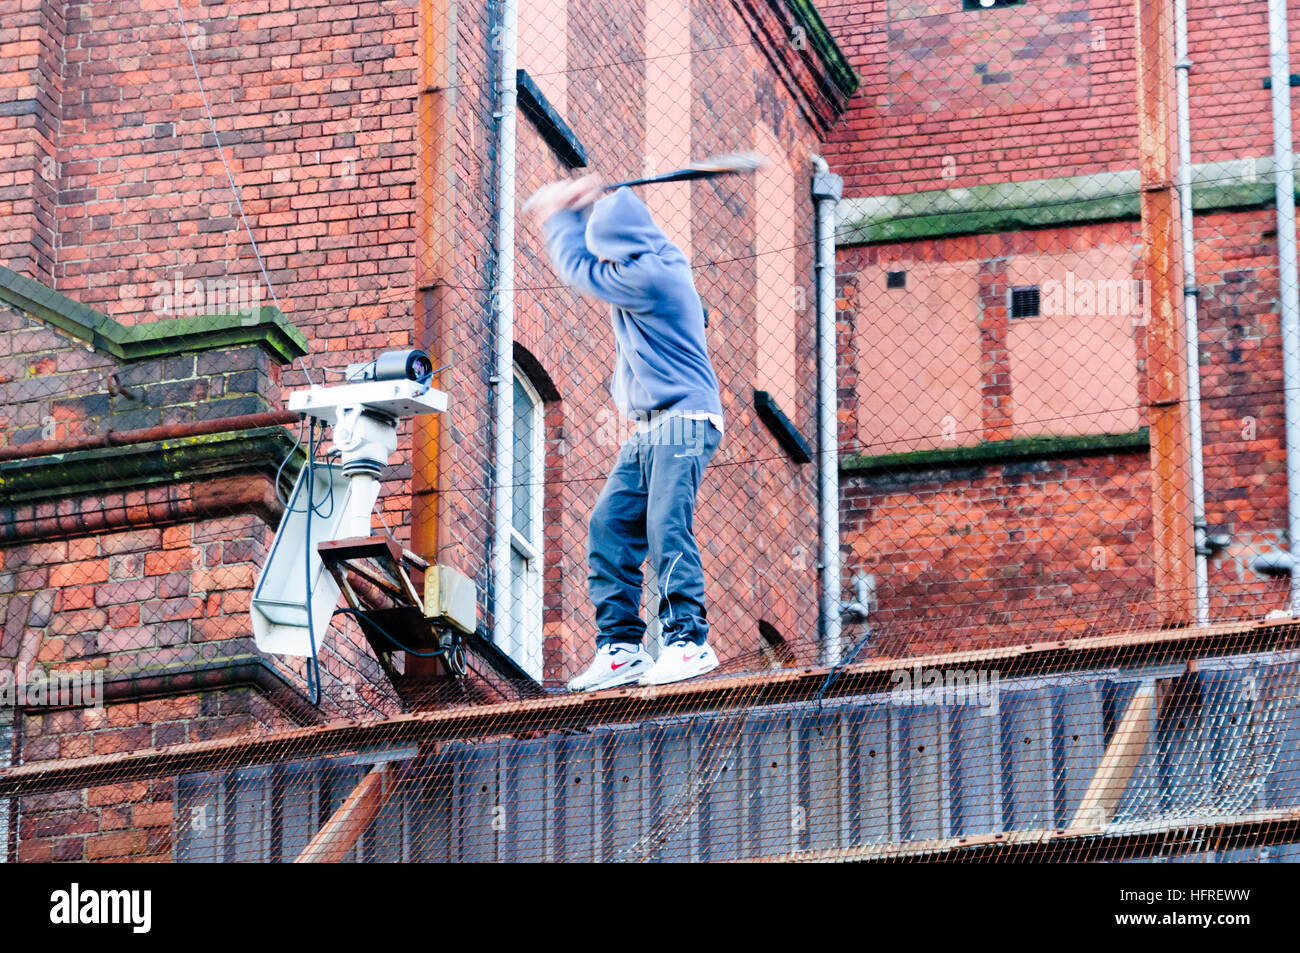 A republican youth uses a stick to break CCTV cameras on a security fence around a PSNI police station - Stock Image